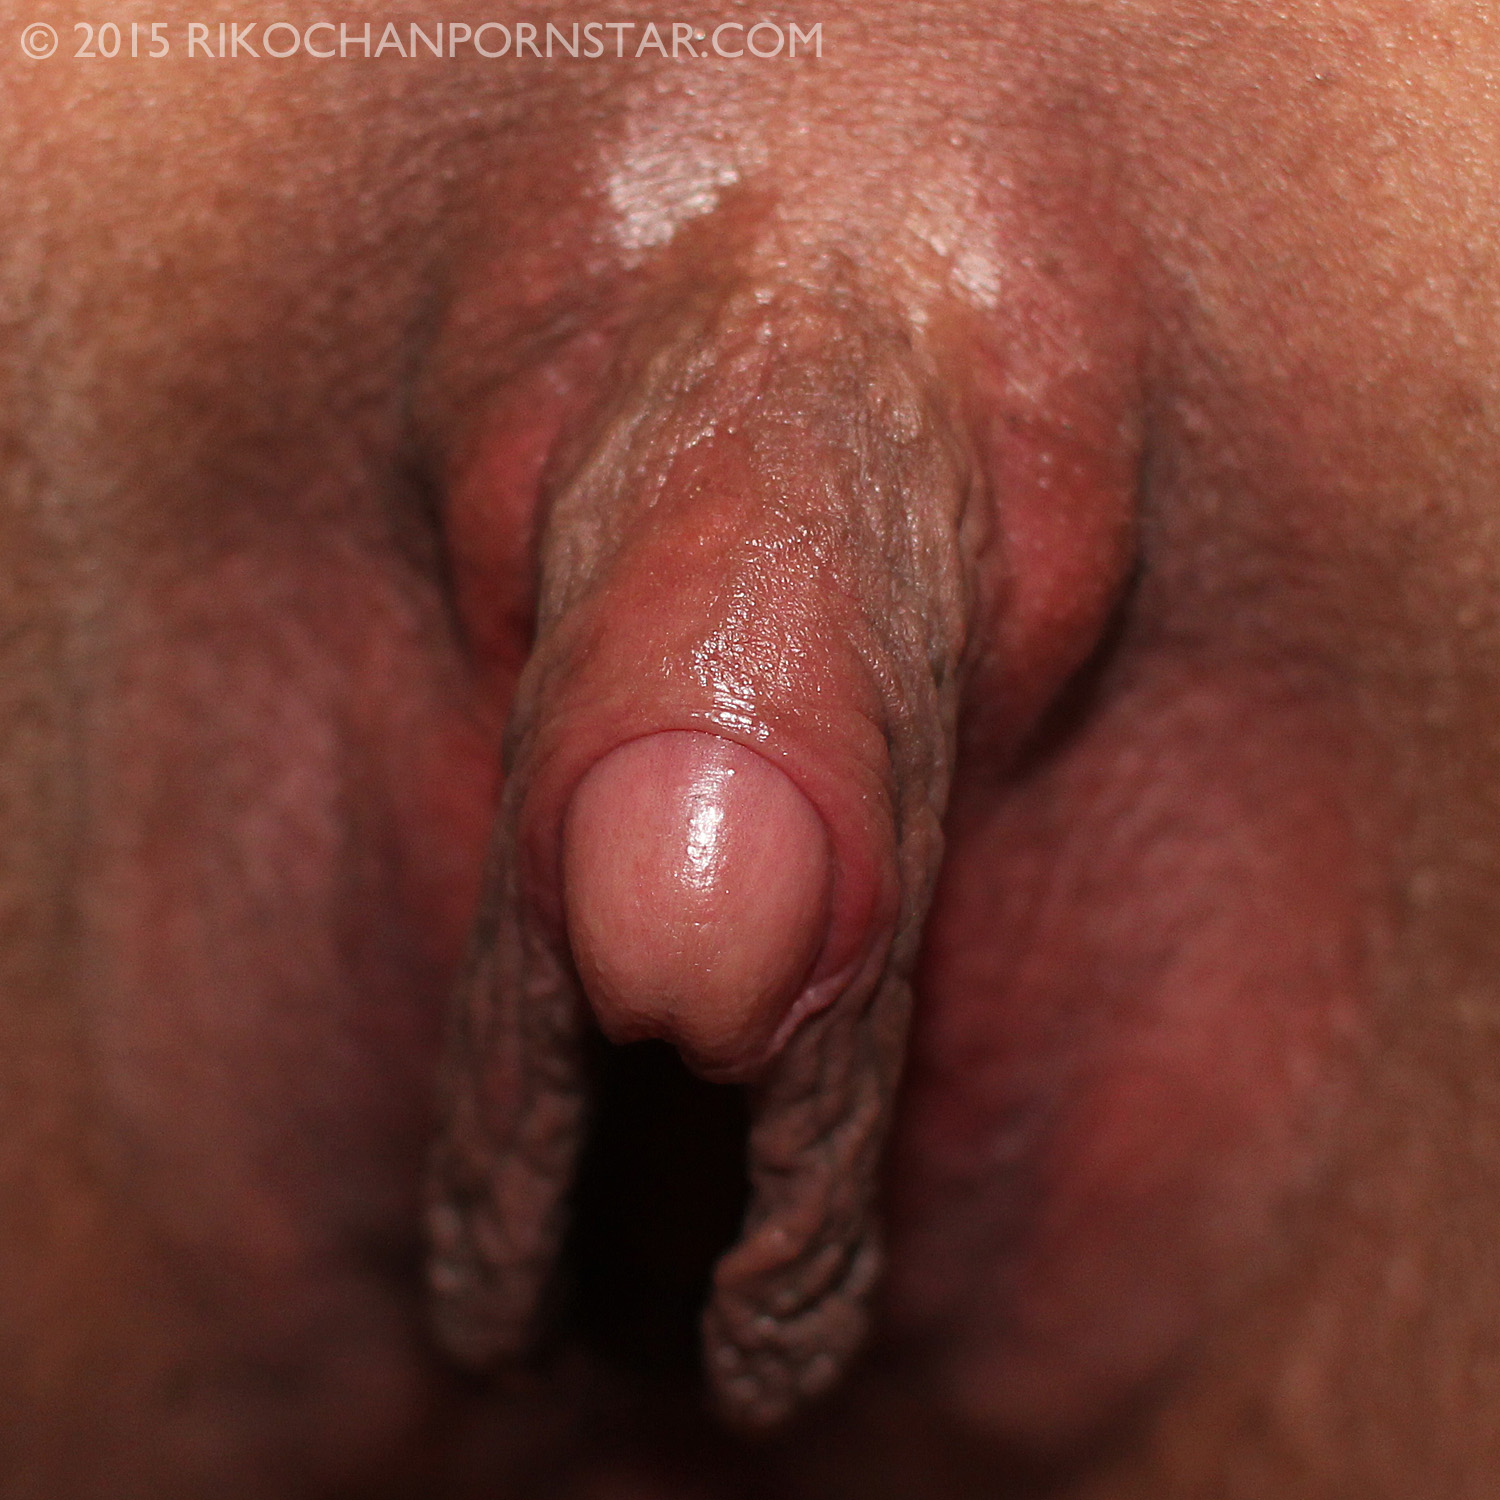 Large clit picture